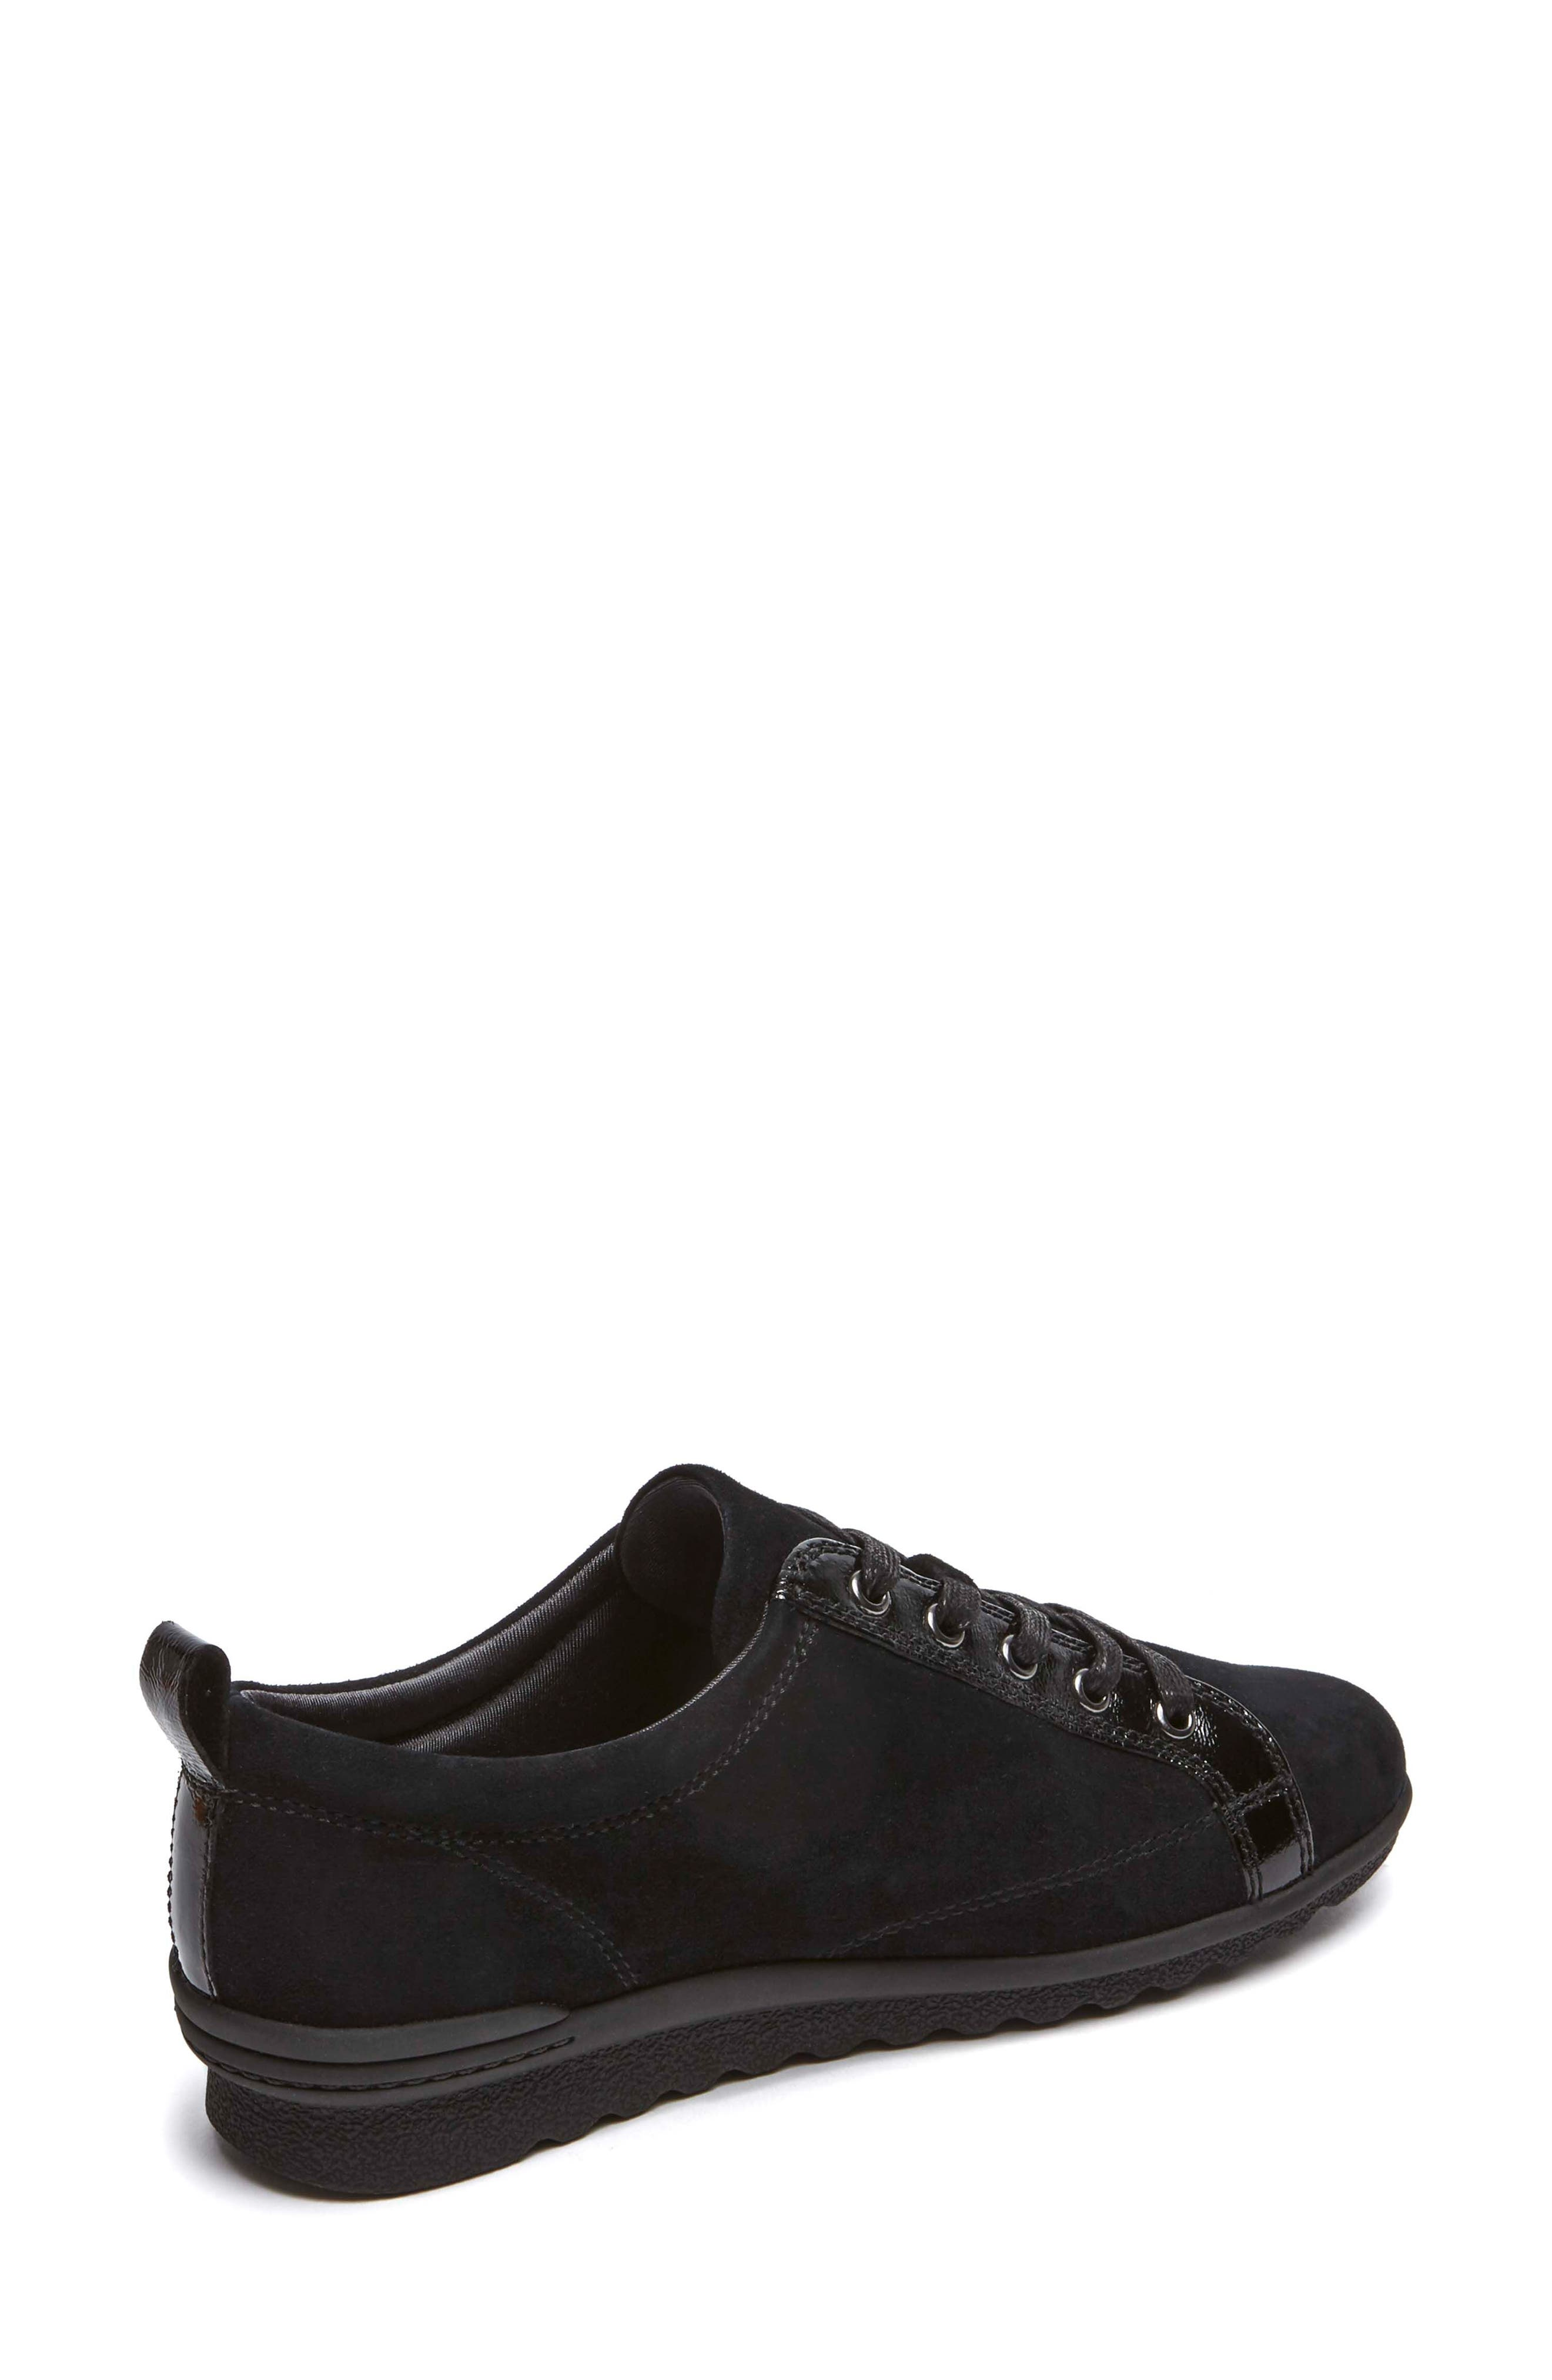 Chenole Wedge Sneaker,                             Alternate thumbnail 2, color,                             BLACK SUEDE